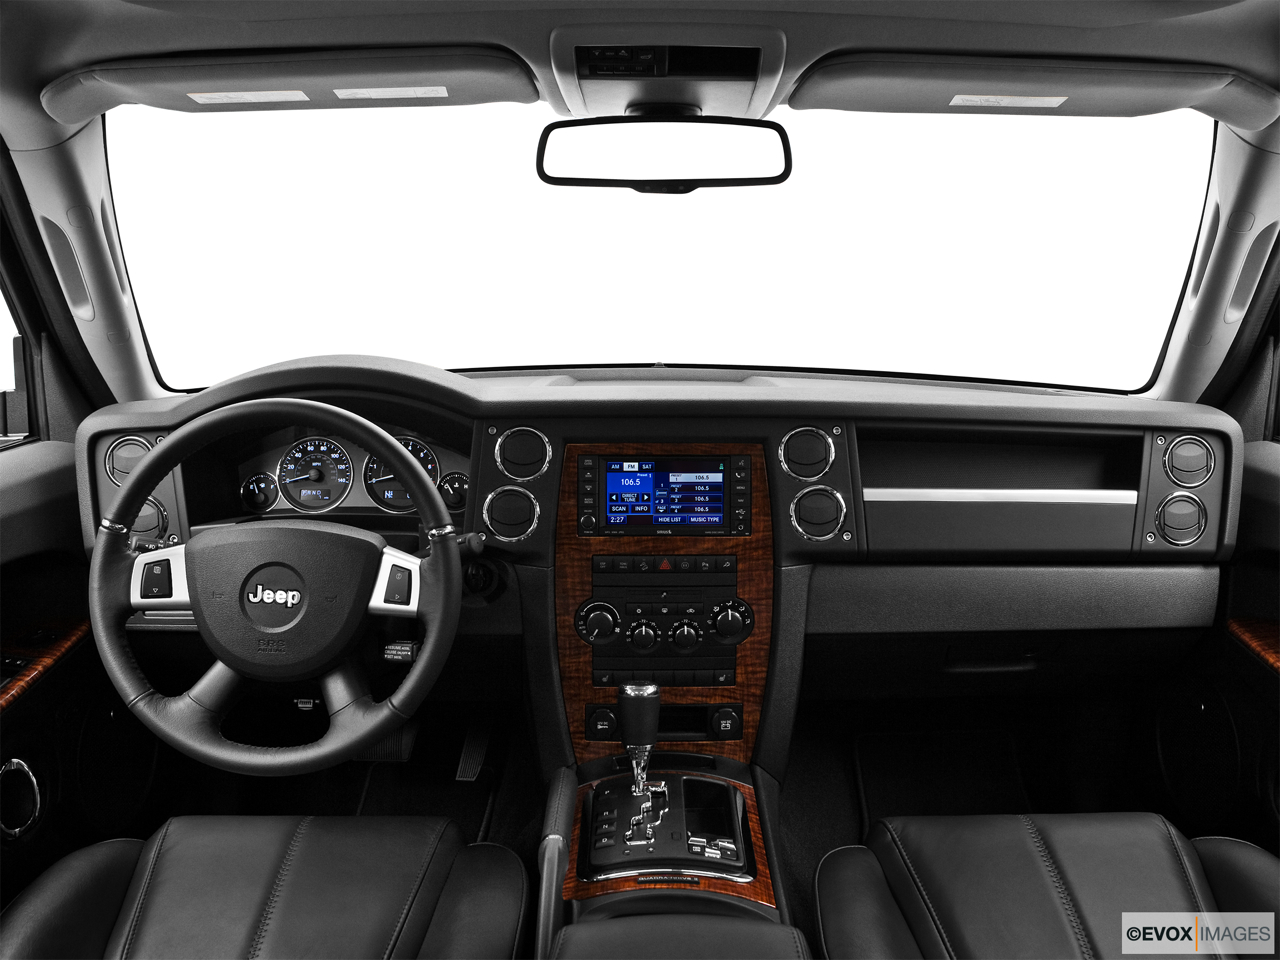 2010 Jeep Commander Limited Centered wide dash shot